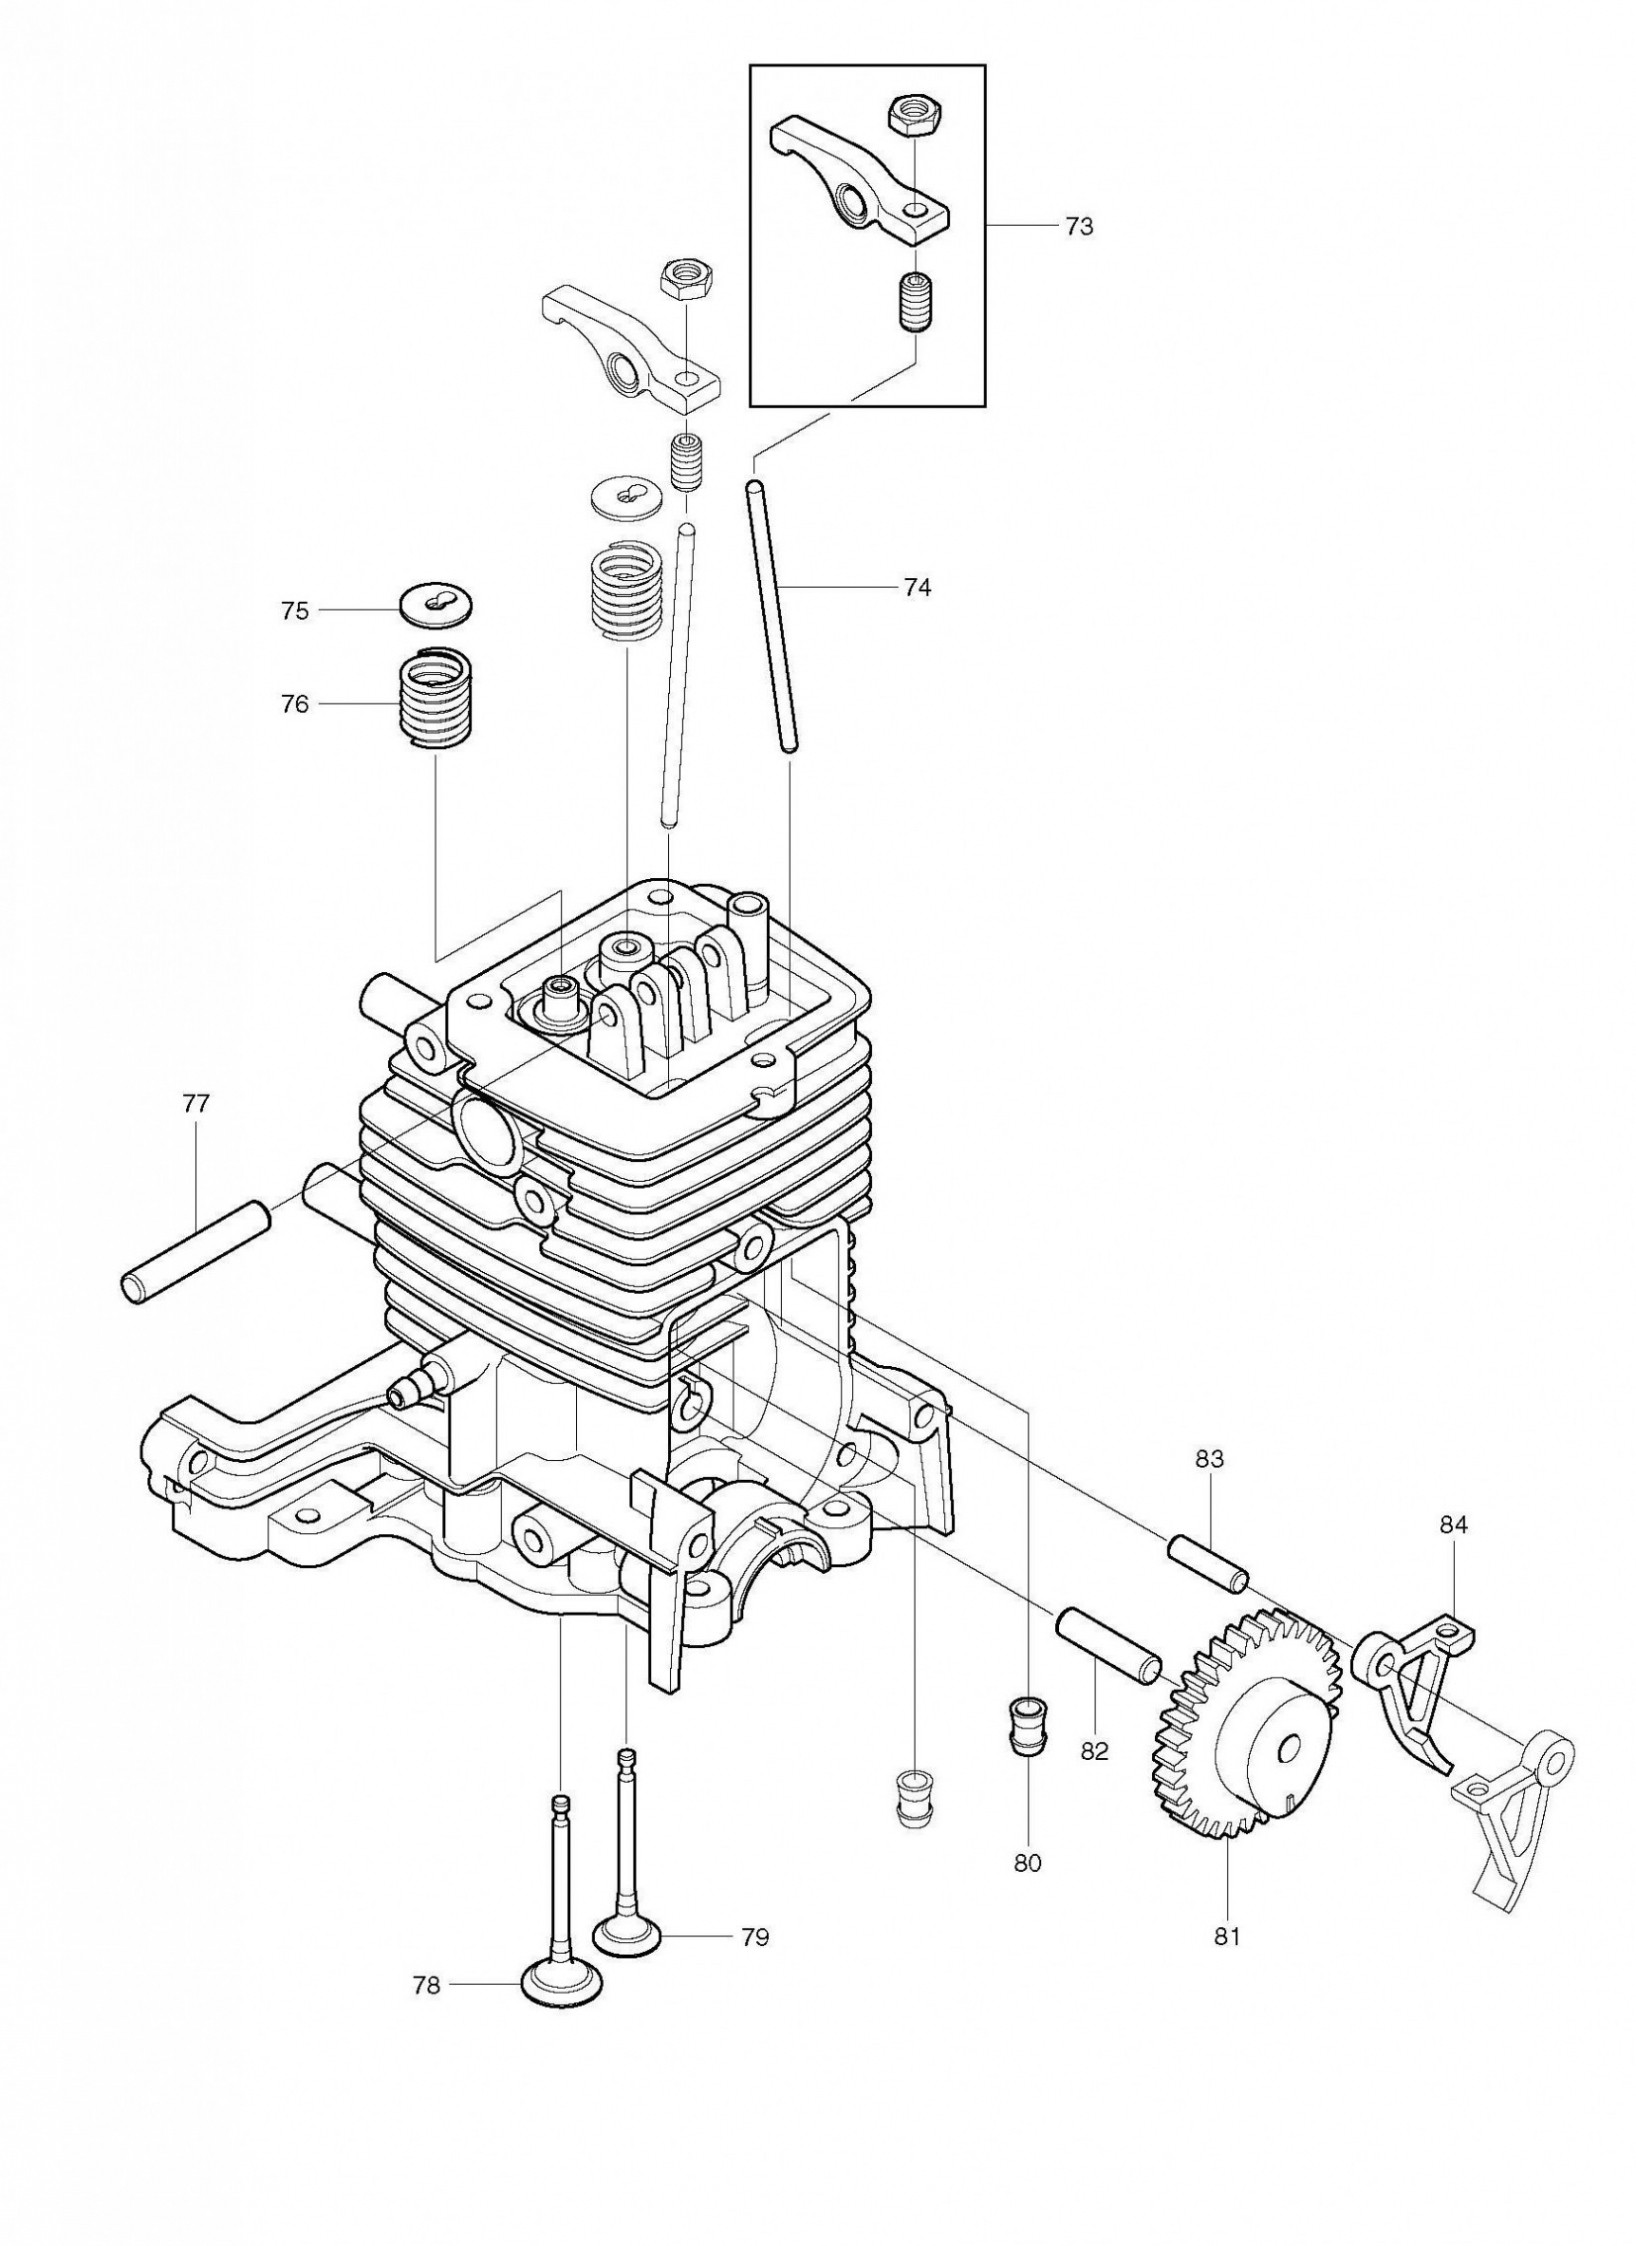 Diagram Of Four Stroke Engine